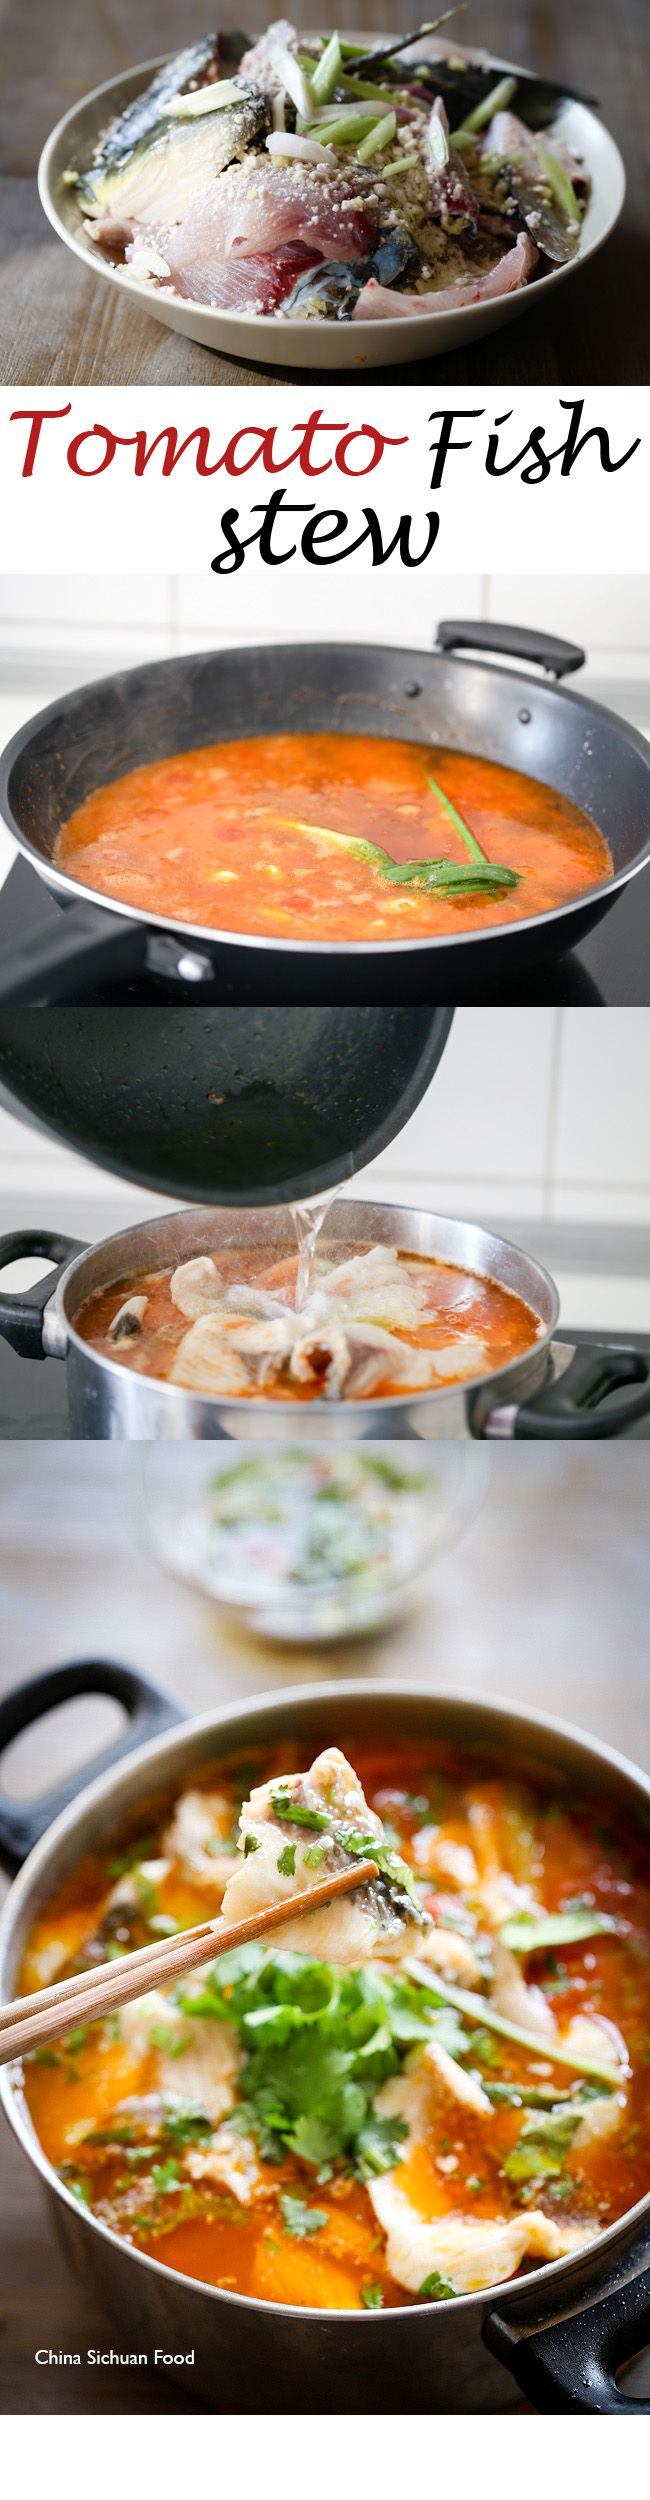 #tomato #fish stew, a non-spicy Szechuan style great flavor fish stew as long as you get high quality fish and tomatoes